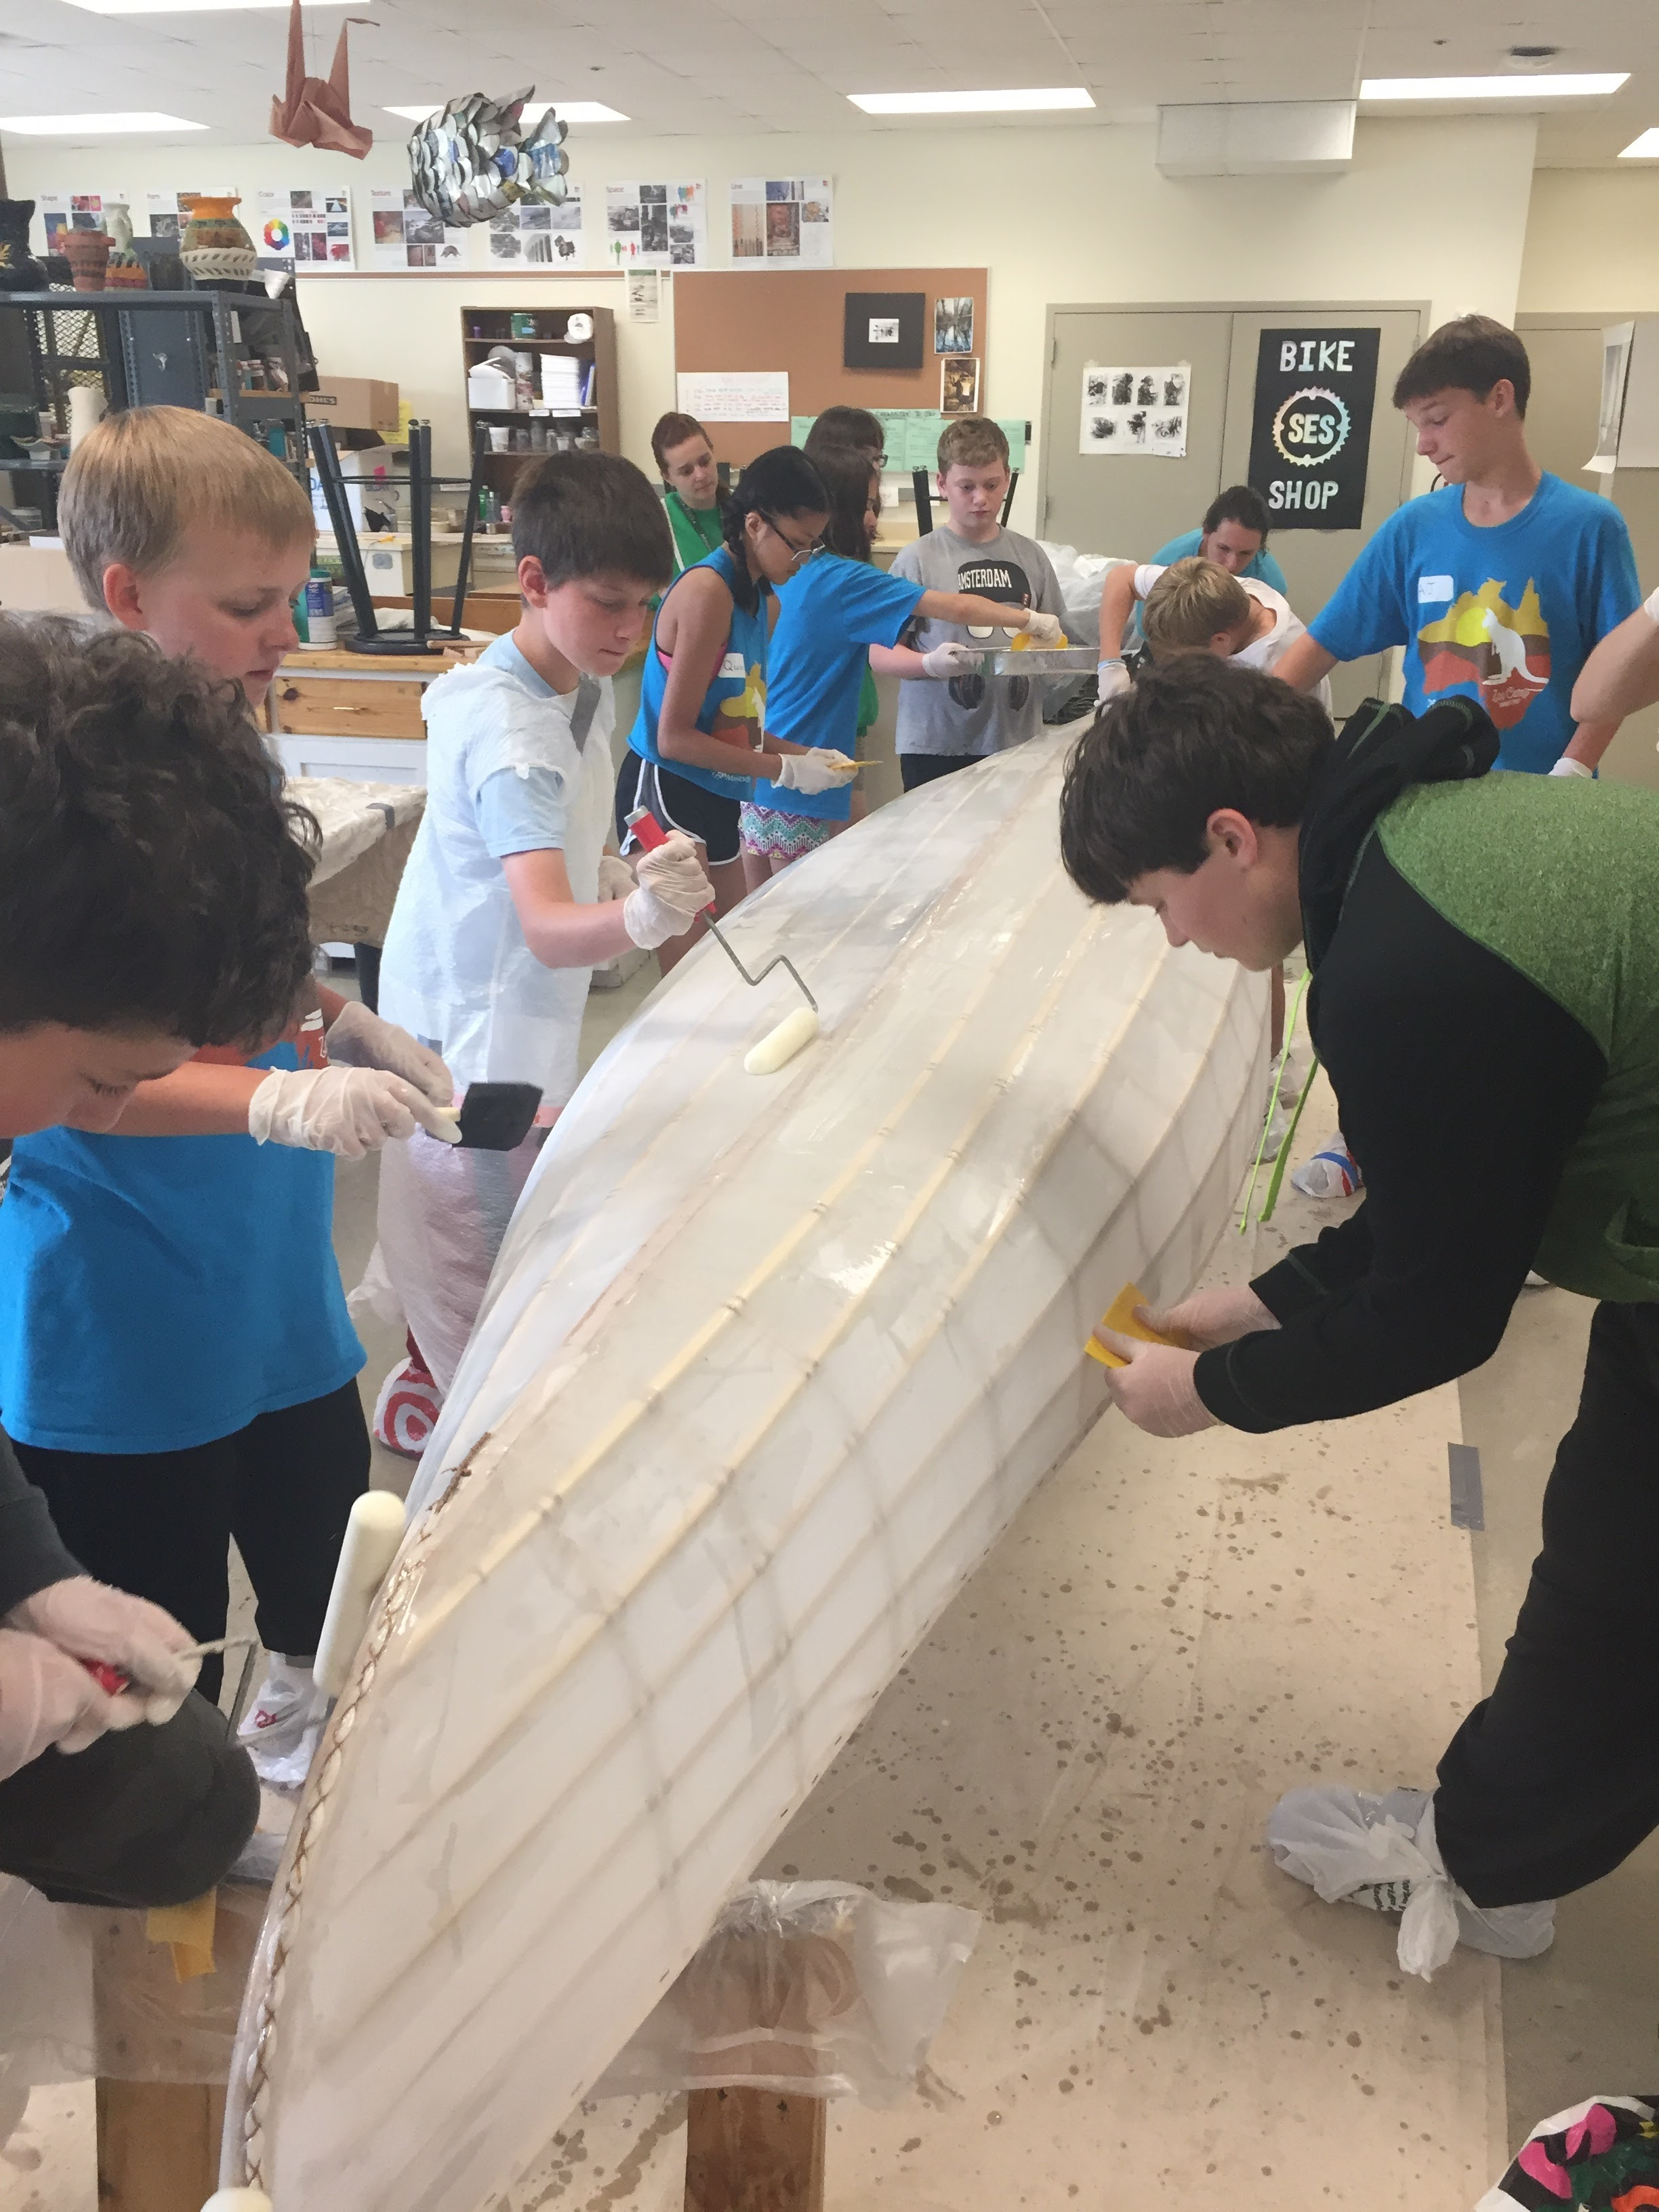 Students at the MN Zoo work together to build a canoe in an intensive two week program.